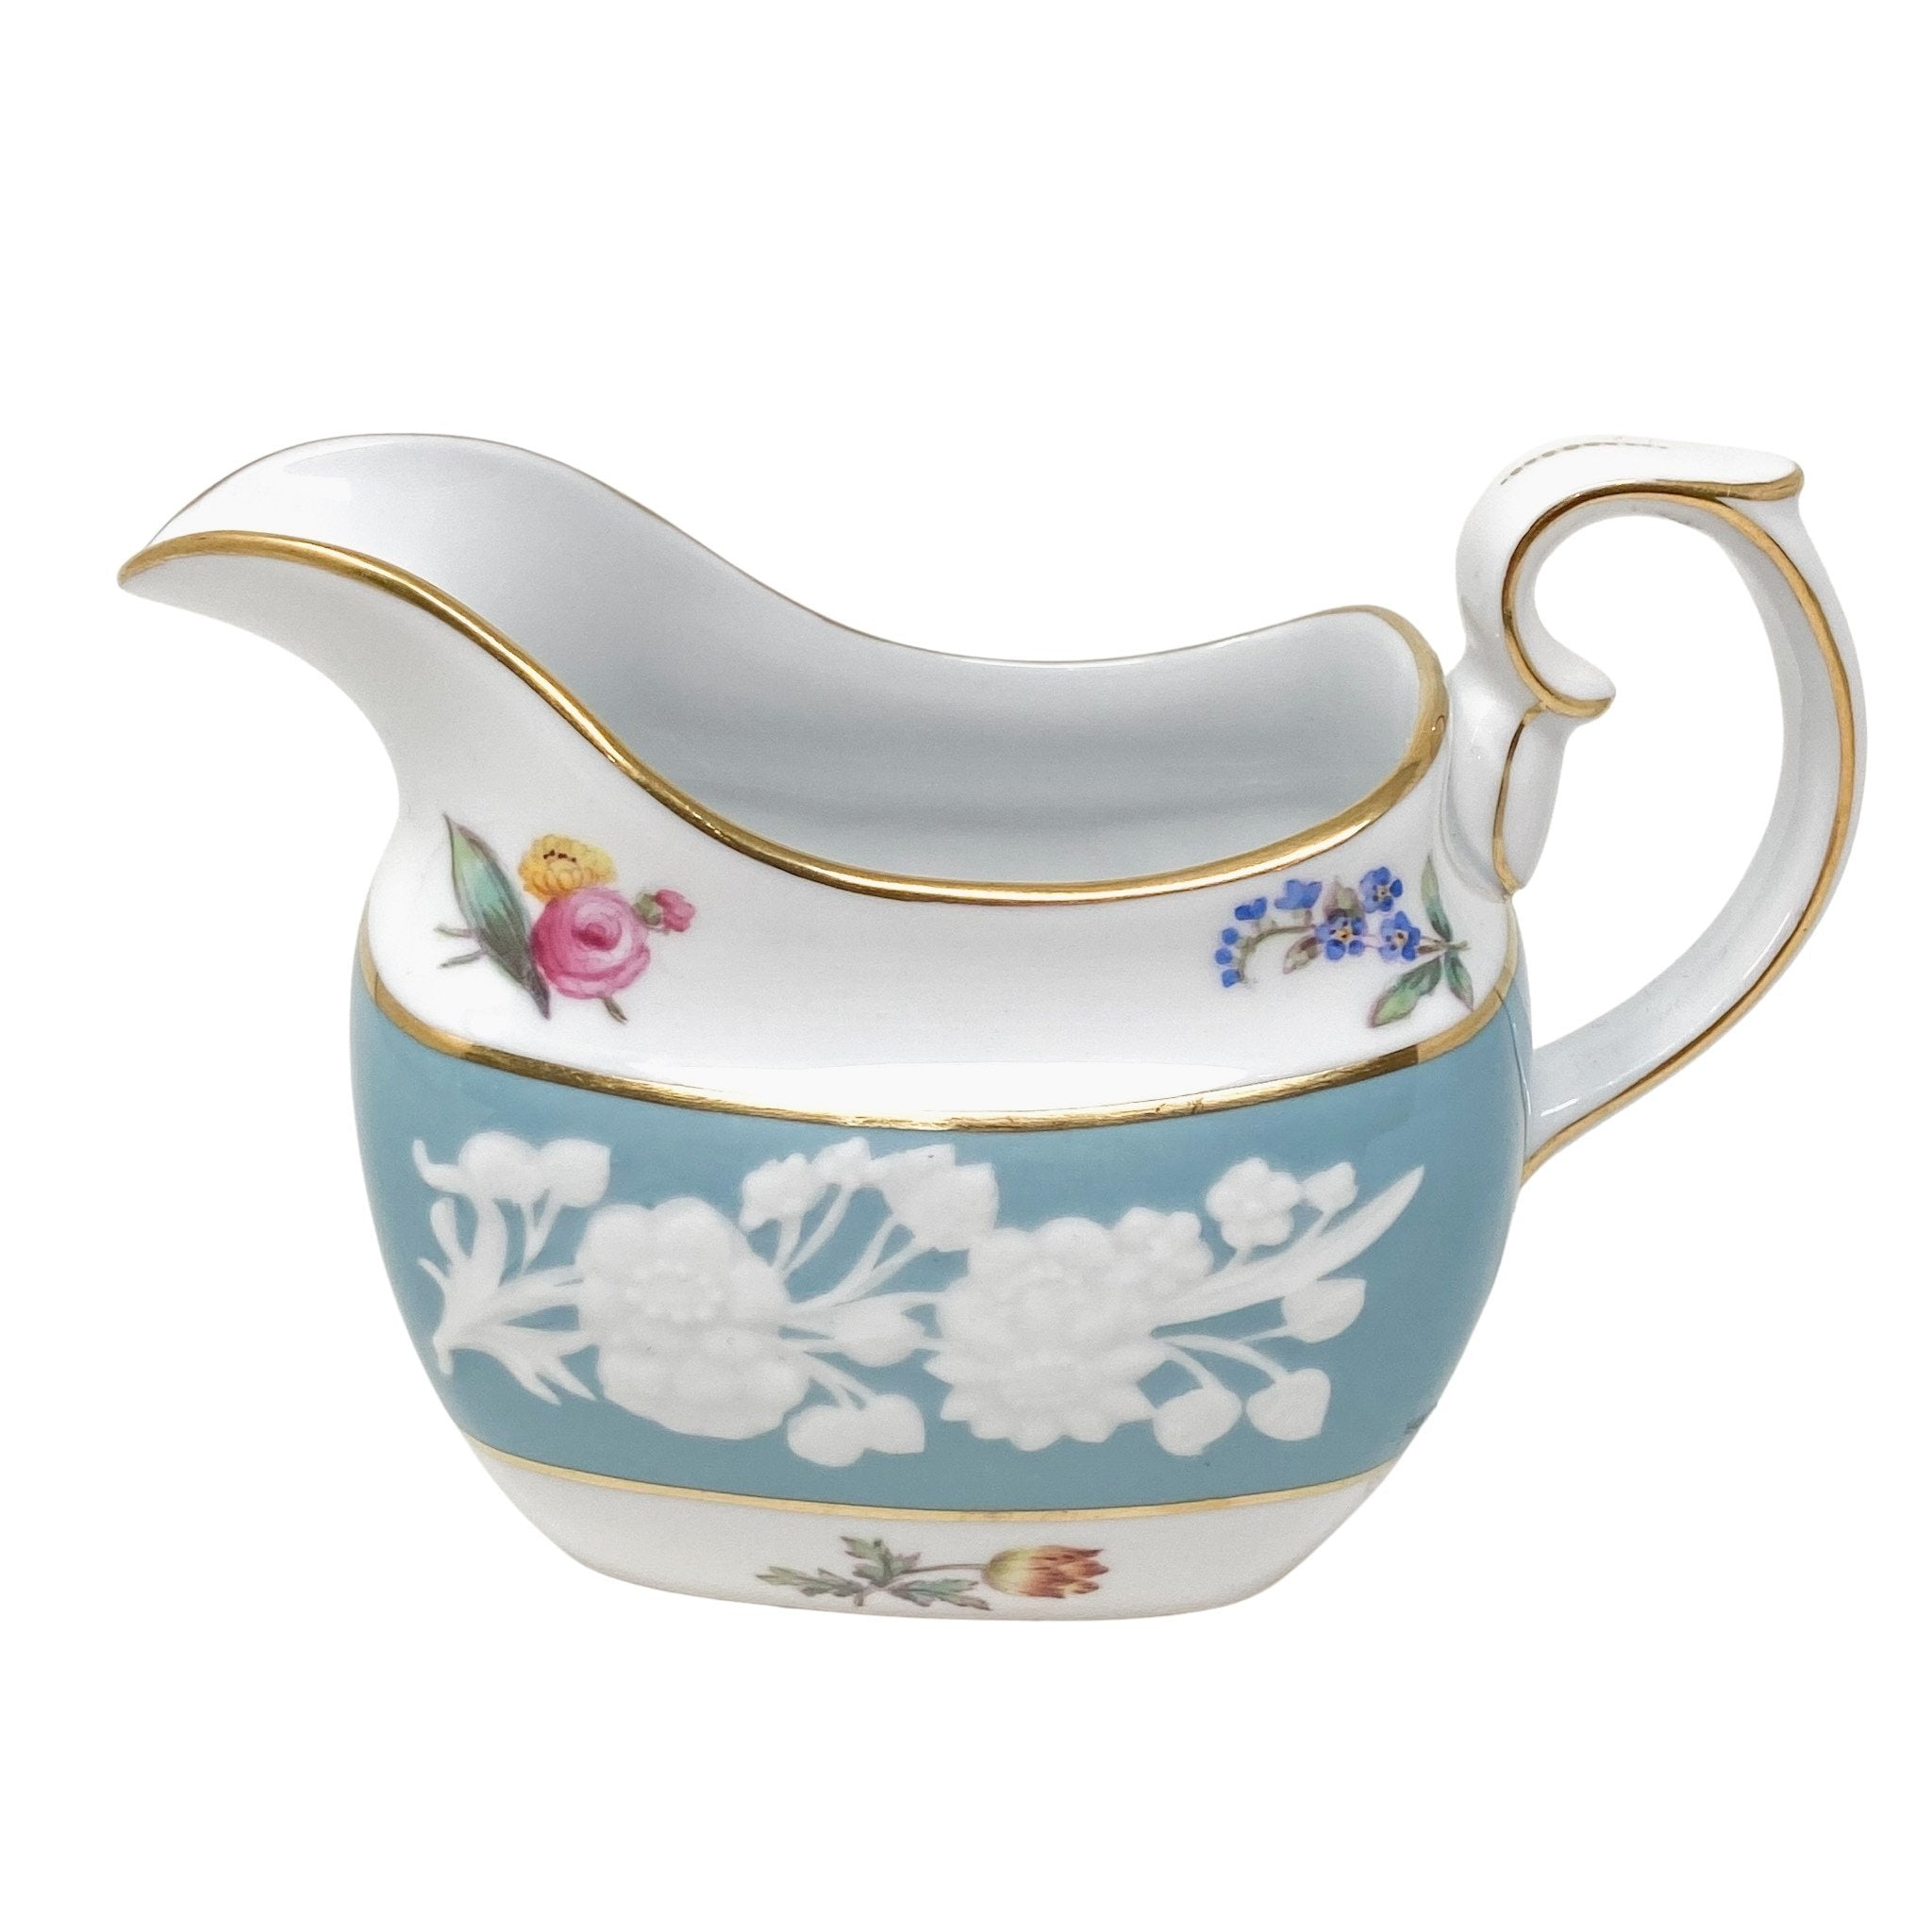 Spode Copeland | Creamer | Spode - The Brooklyn Teacup